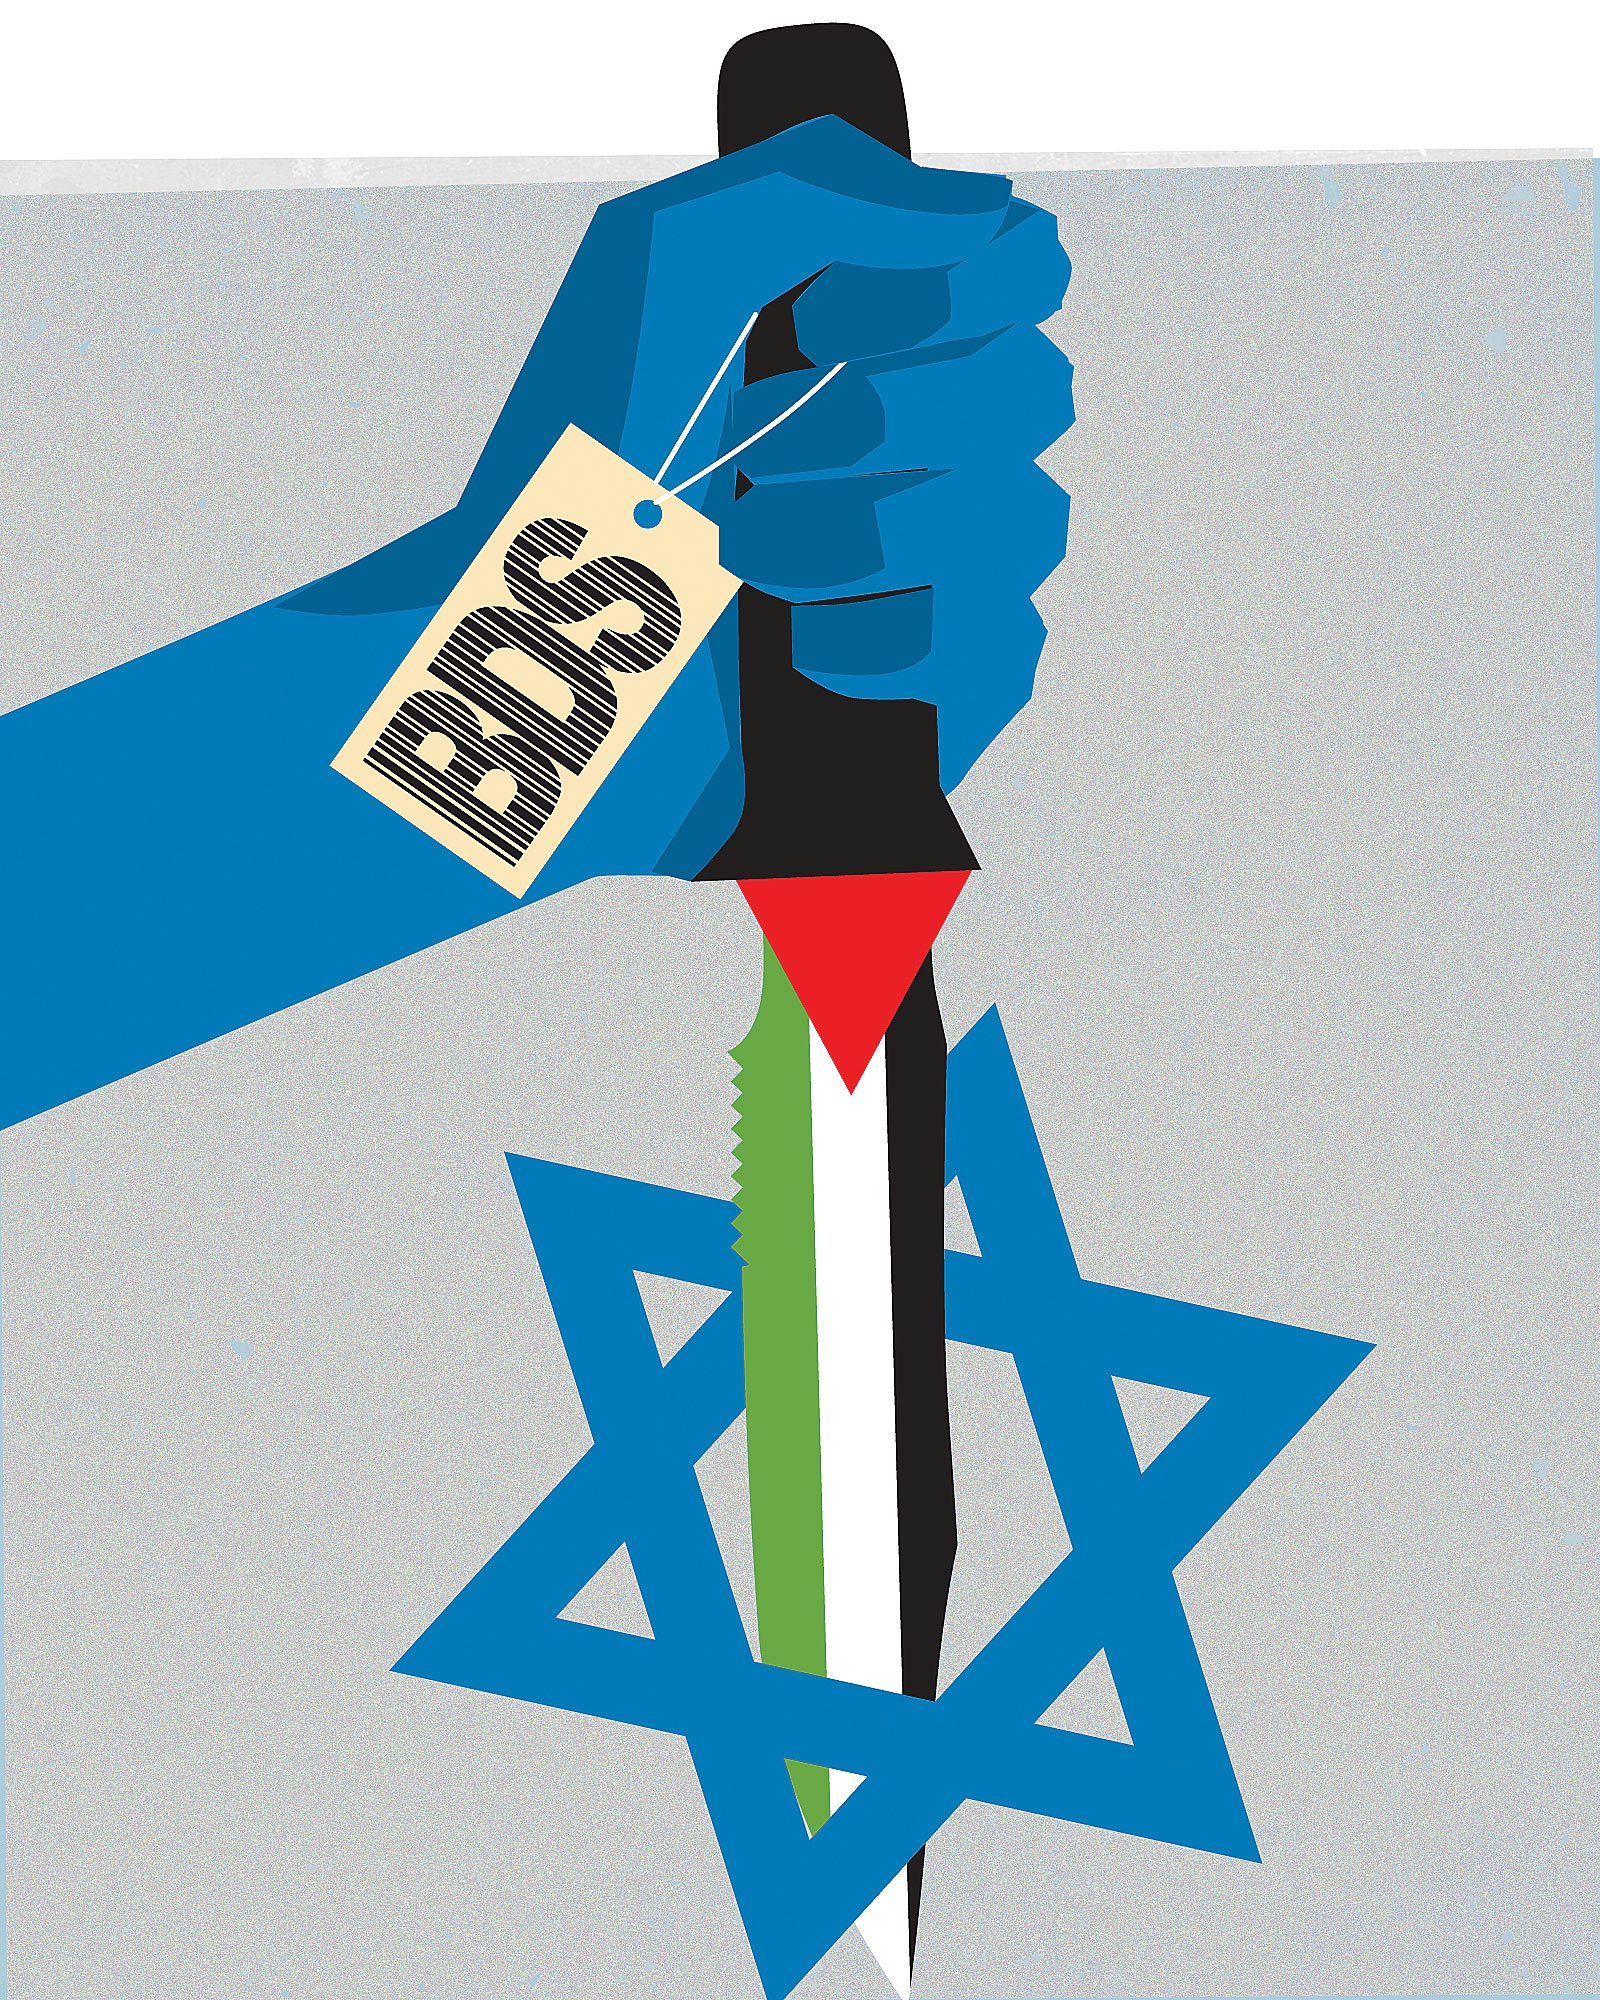 The Boycott, Divestment and Sanctions war against Israel